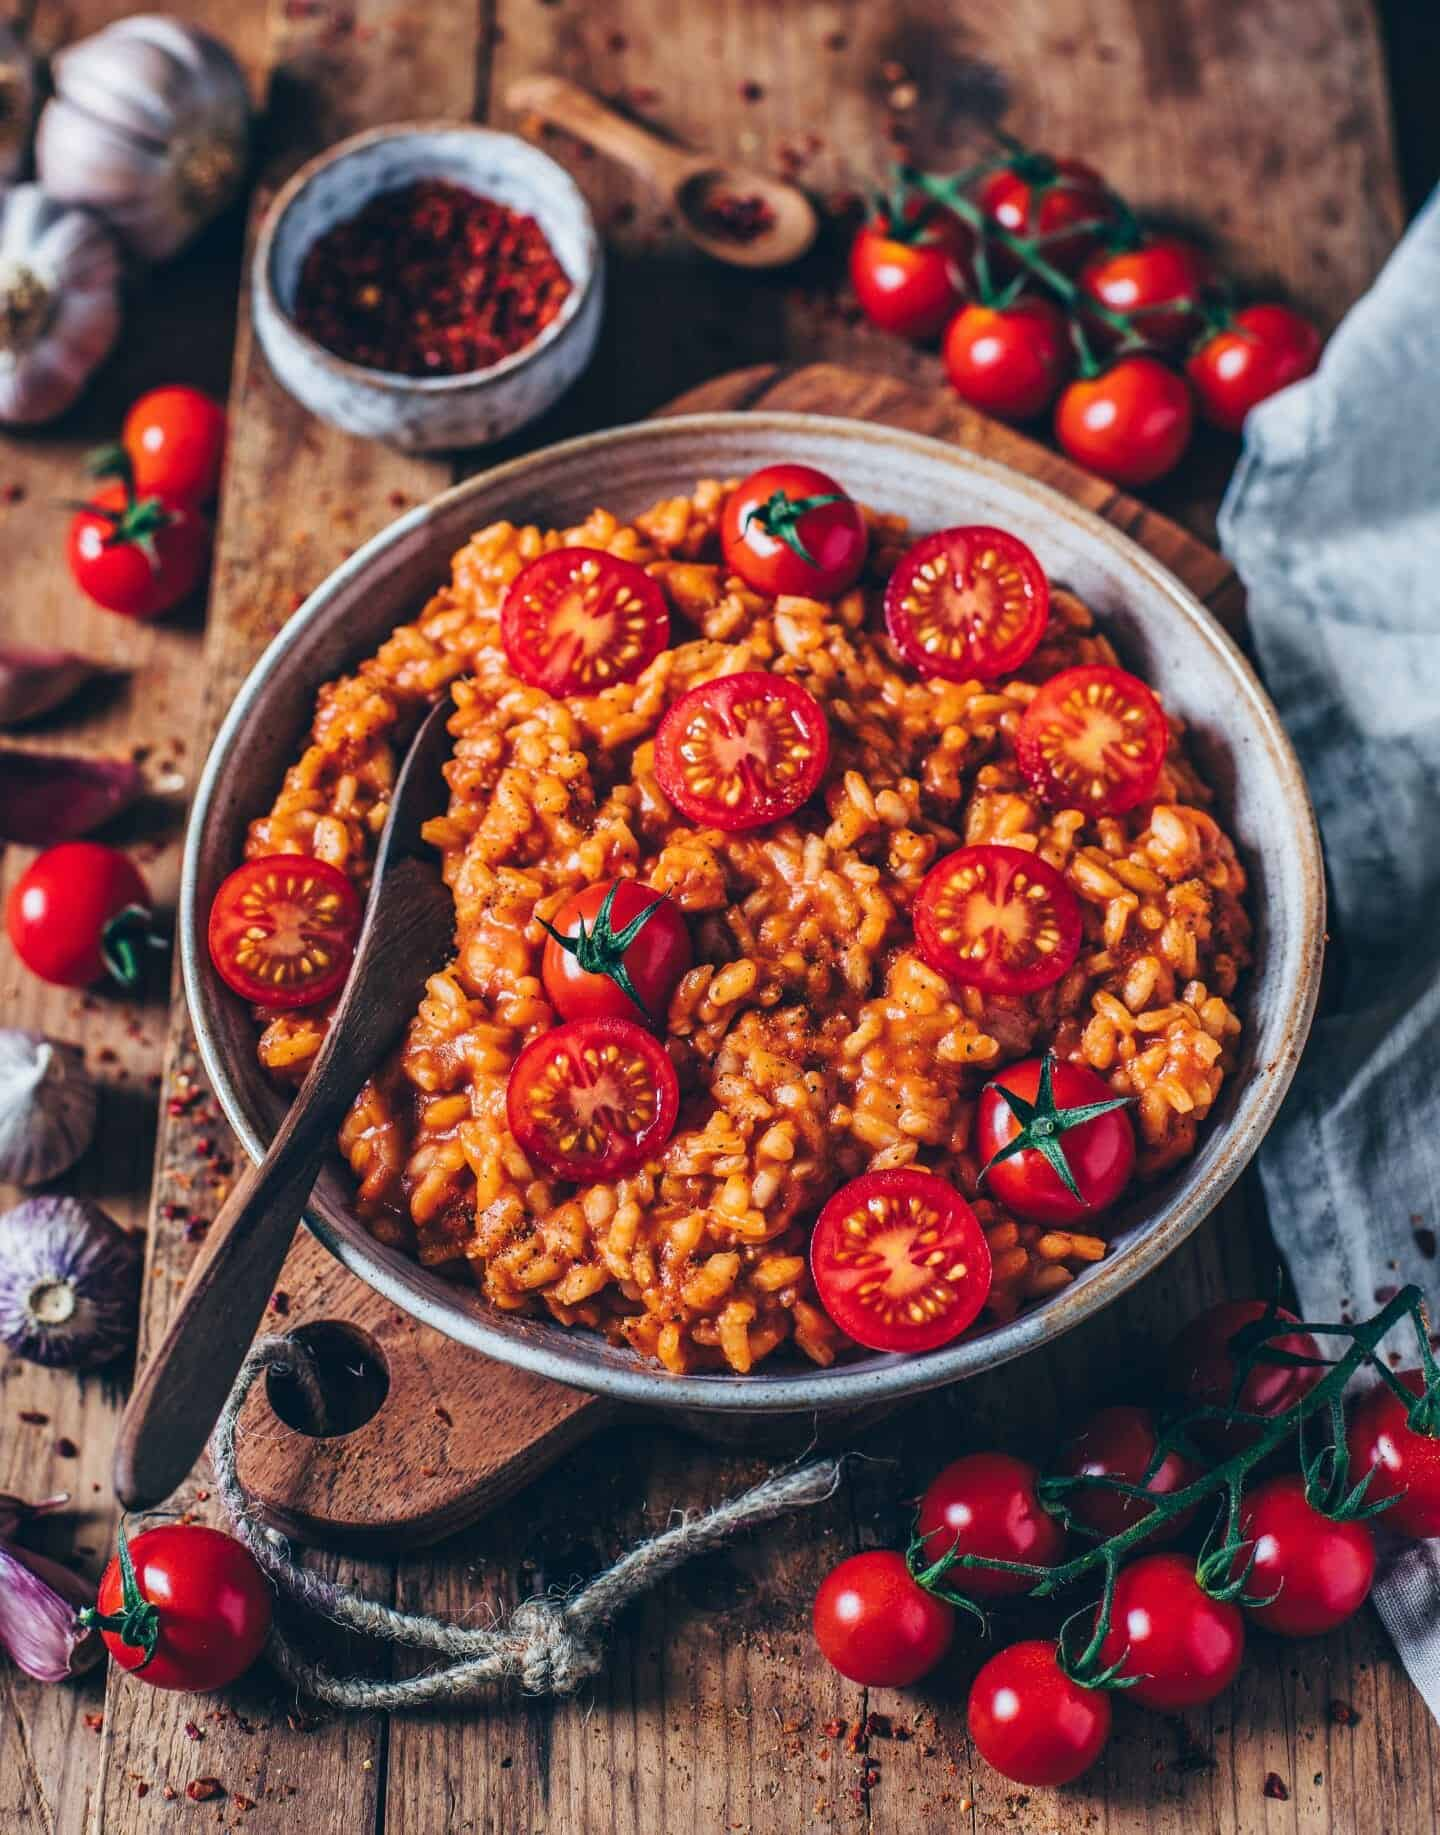 This vegan creamy tomato risotto is easy and quick to make and incredibly delicious! A perfect gluten-free & plant-based lunch or dinner.